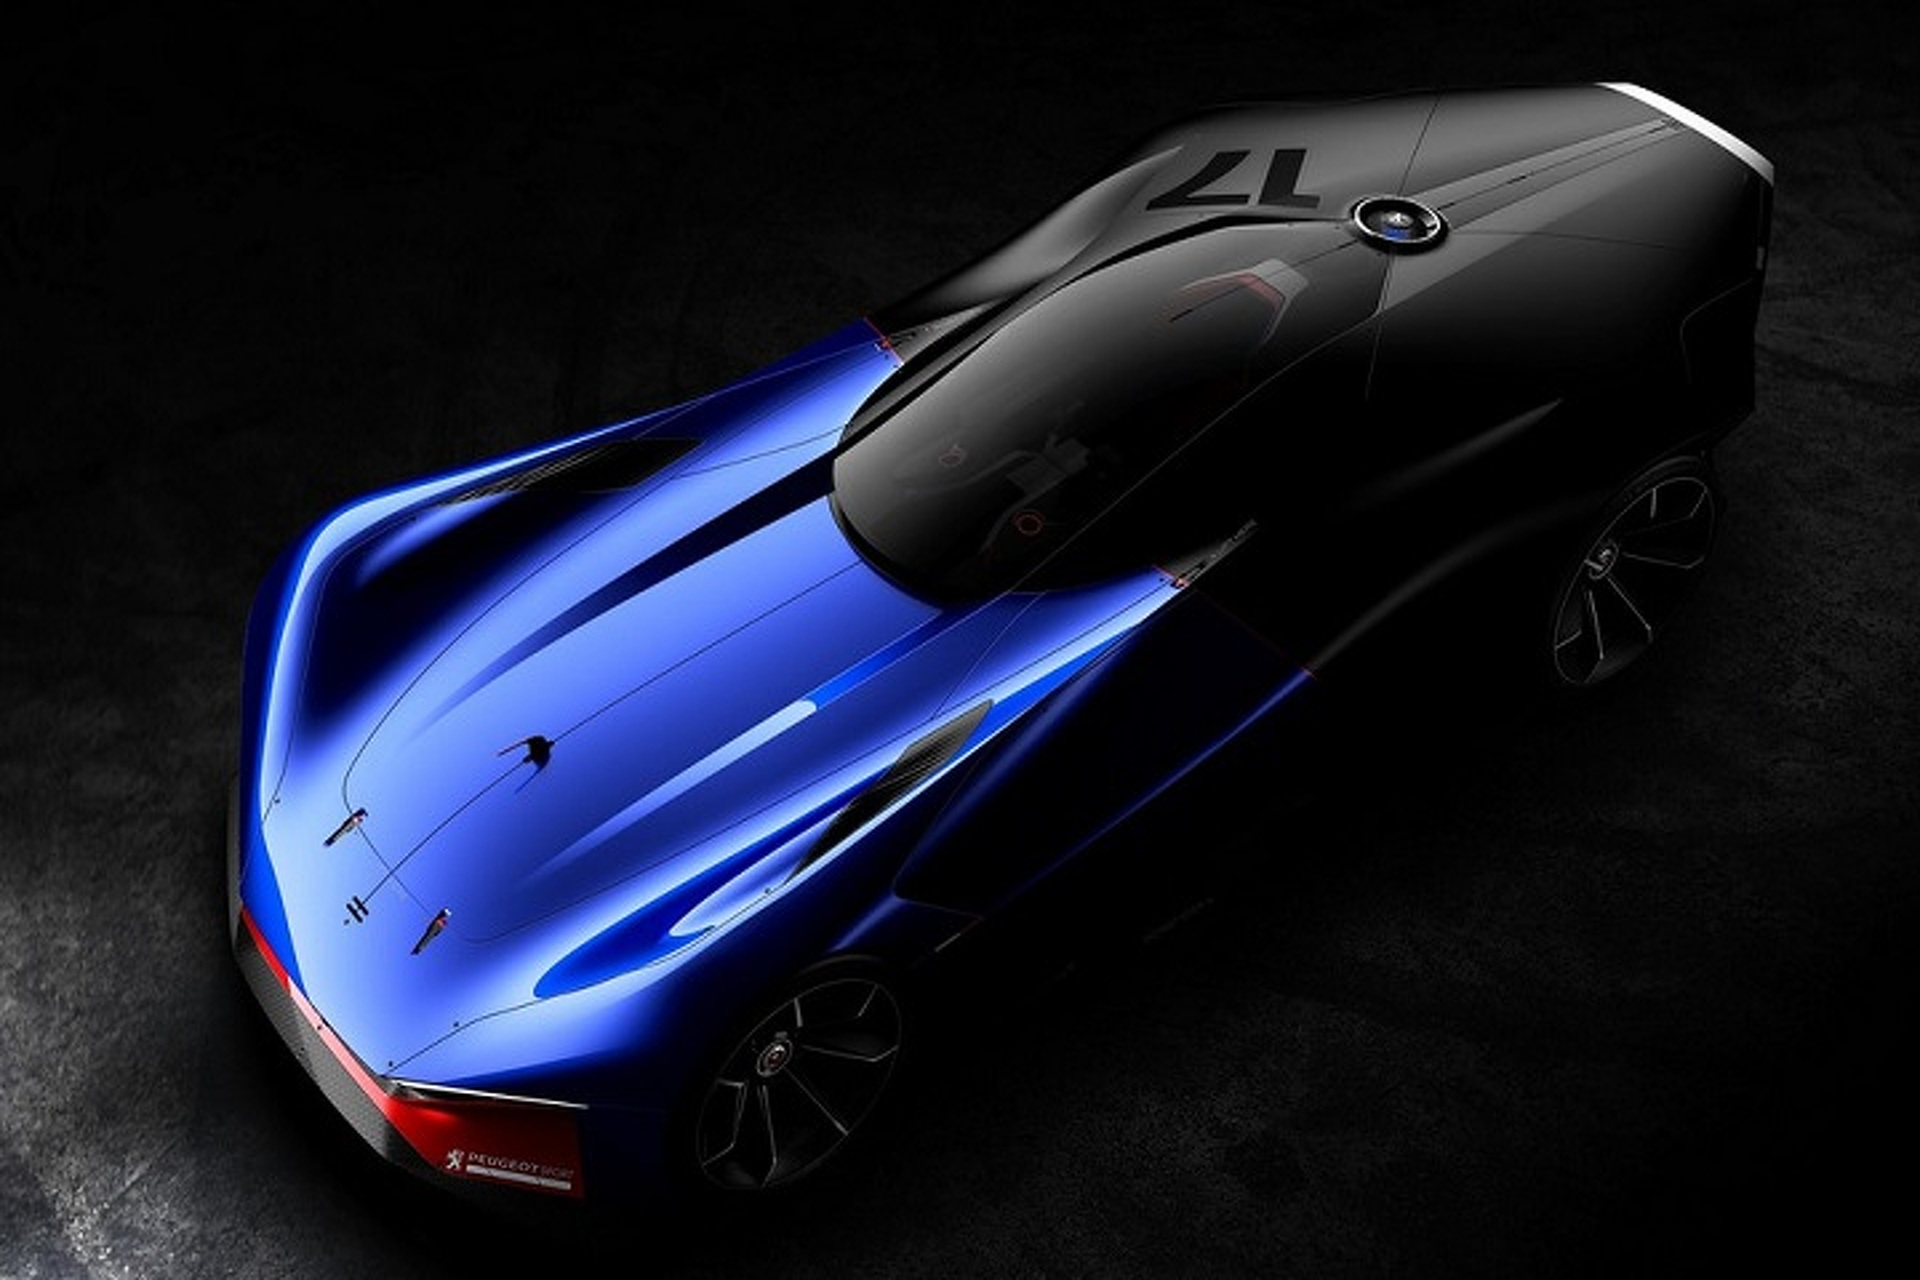 Peugeot Dished Out a Delicious Hybrid Sports Car Concept